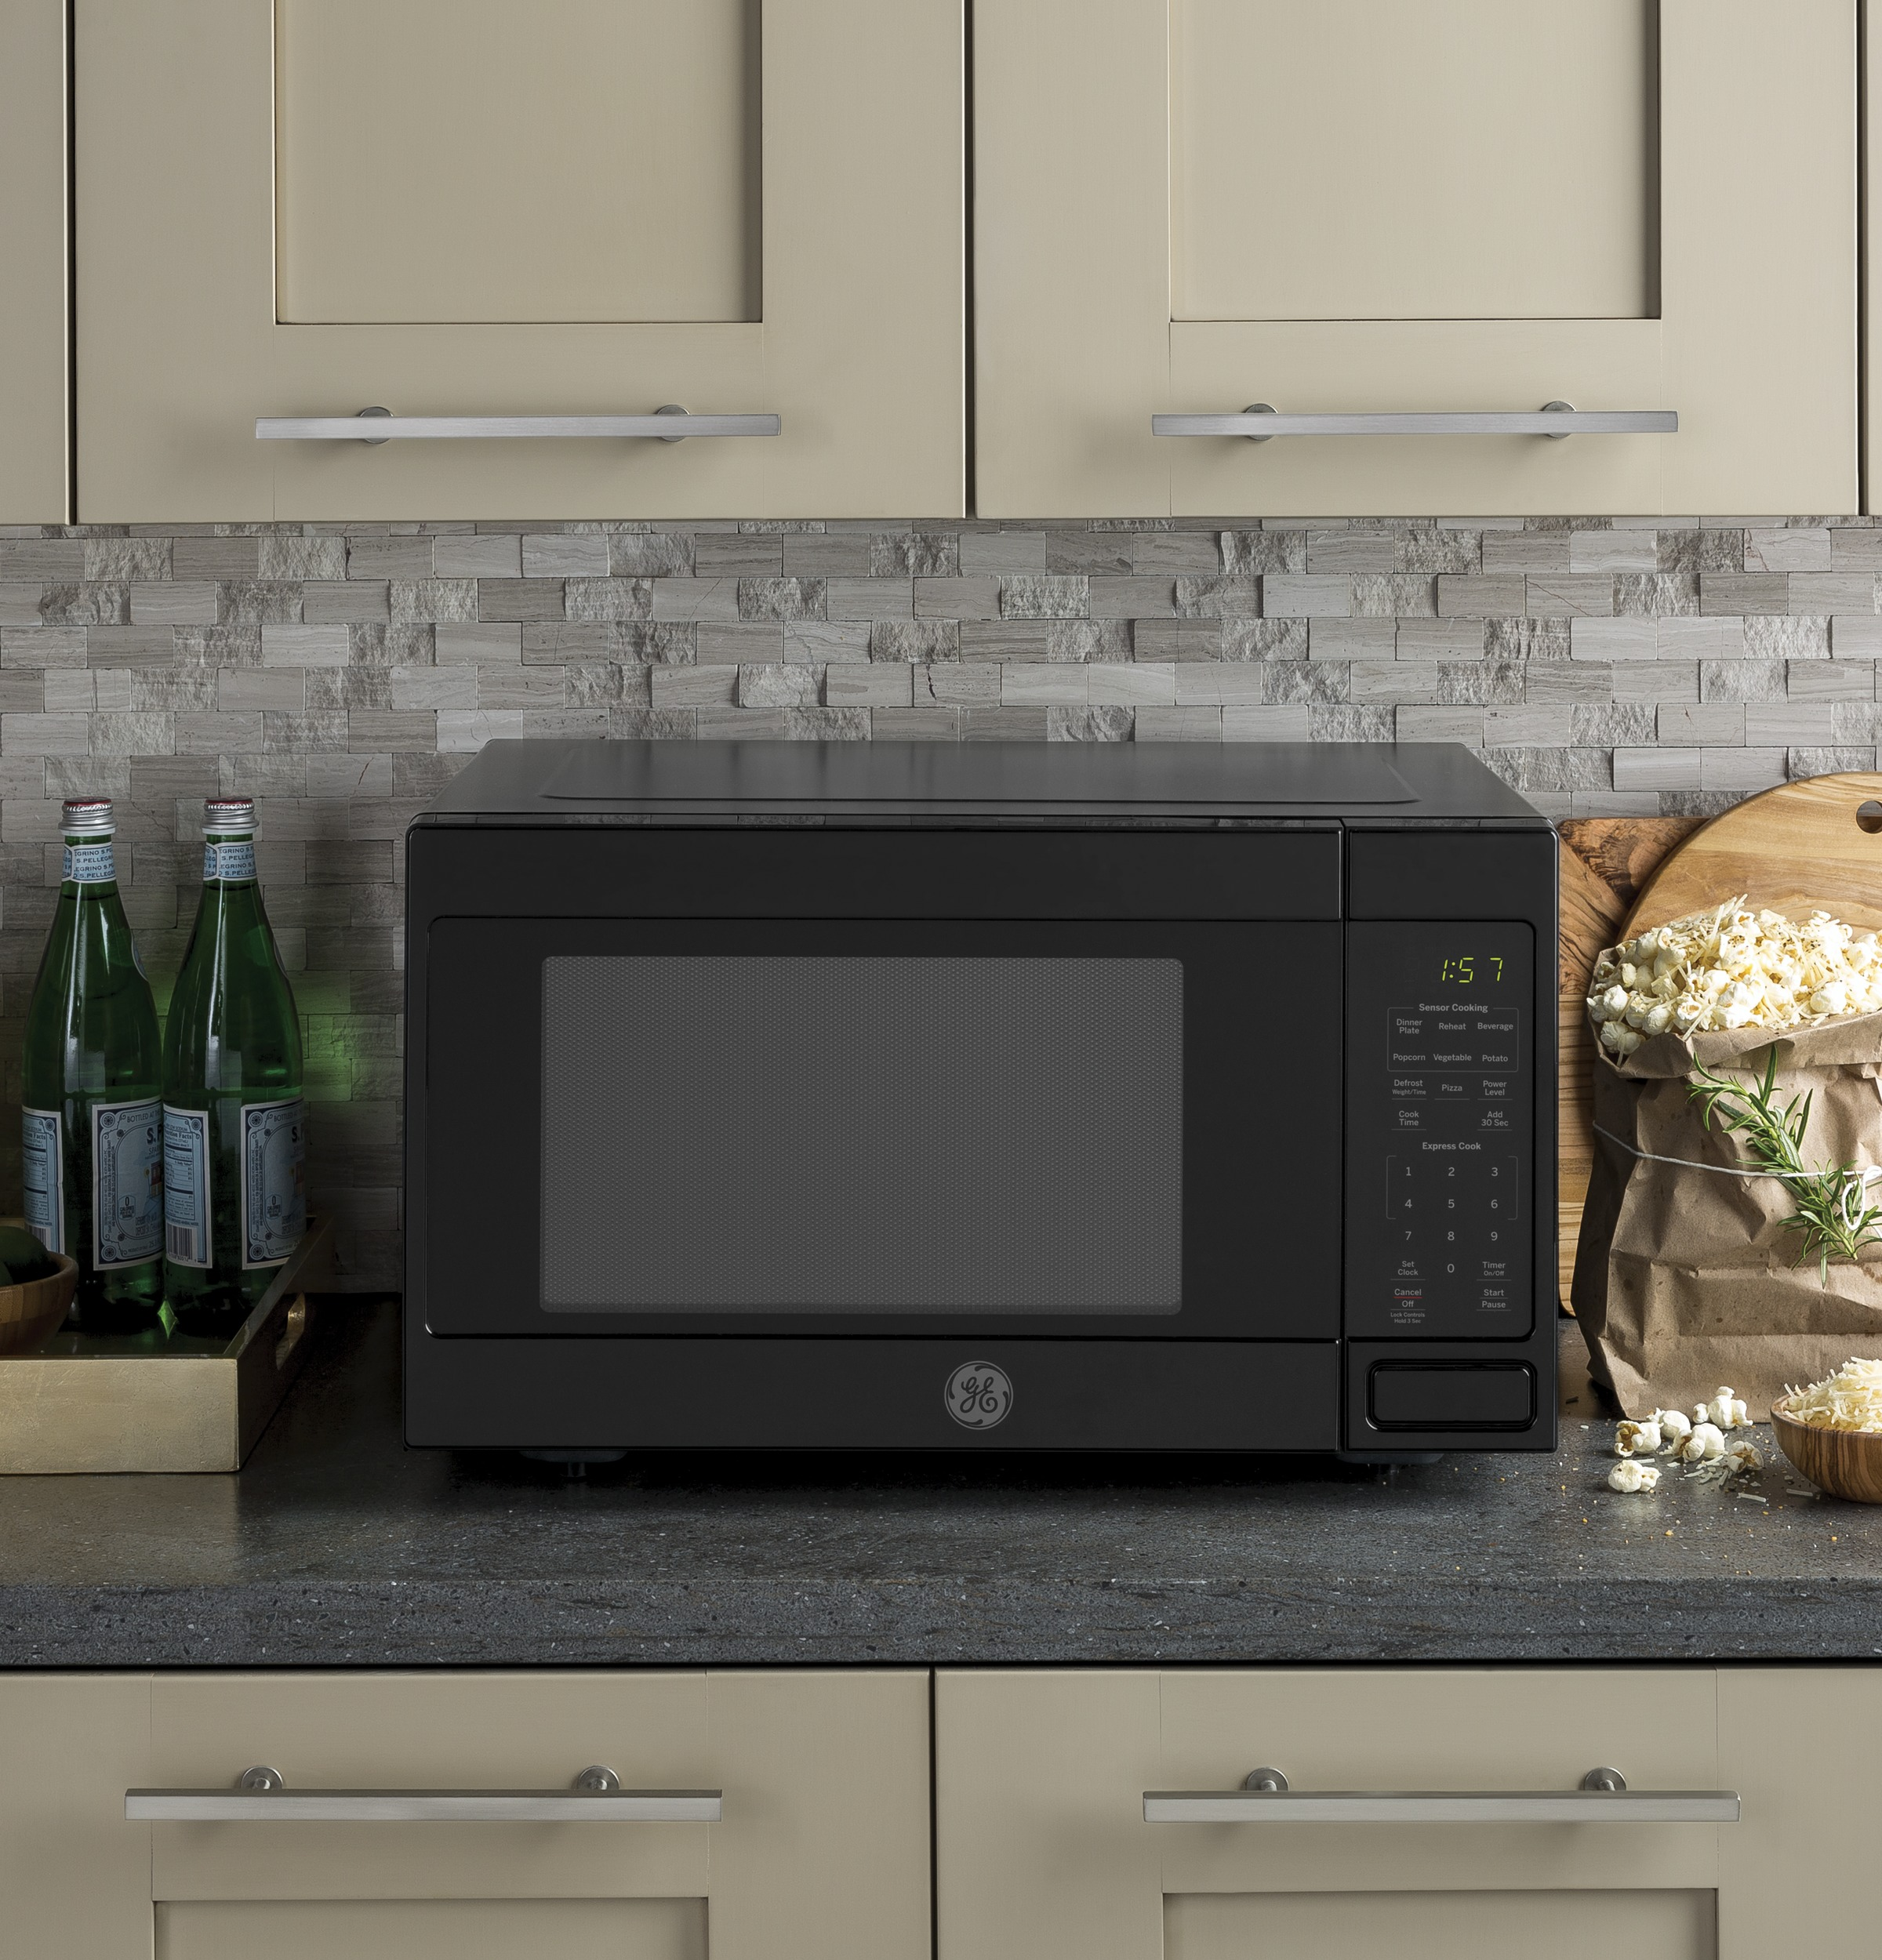 Model: JES1657DMBB | GE GE® 1.6 Cu. Ft. Countertop Microwave Oven